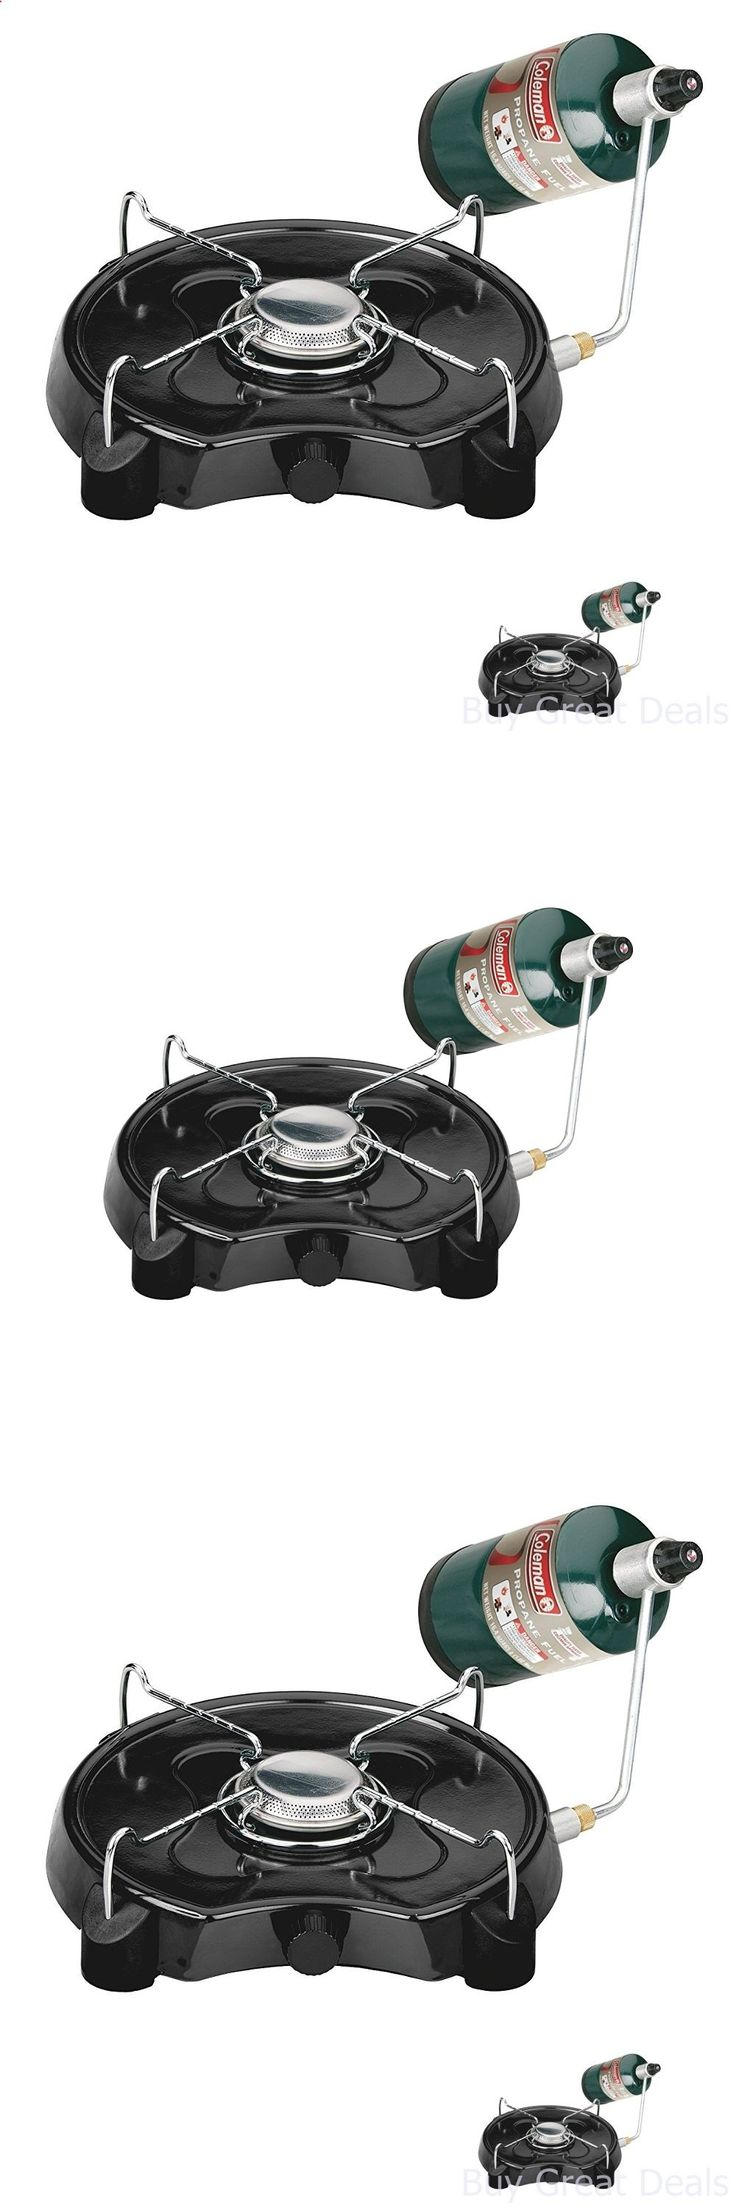 Best 25+ Portable gas stove ideas on Pinterest